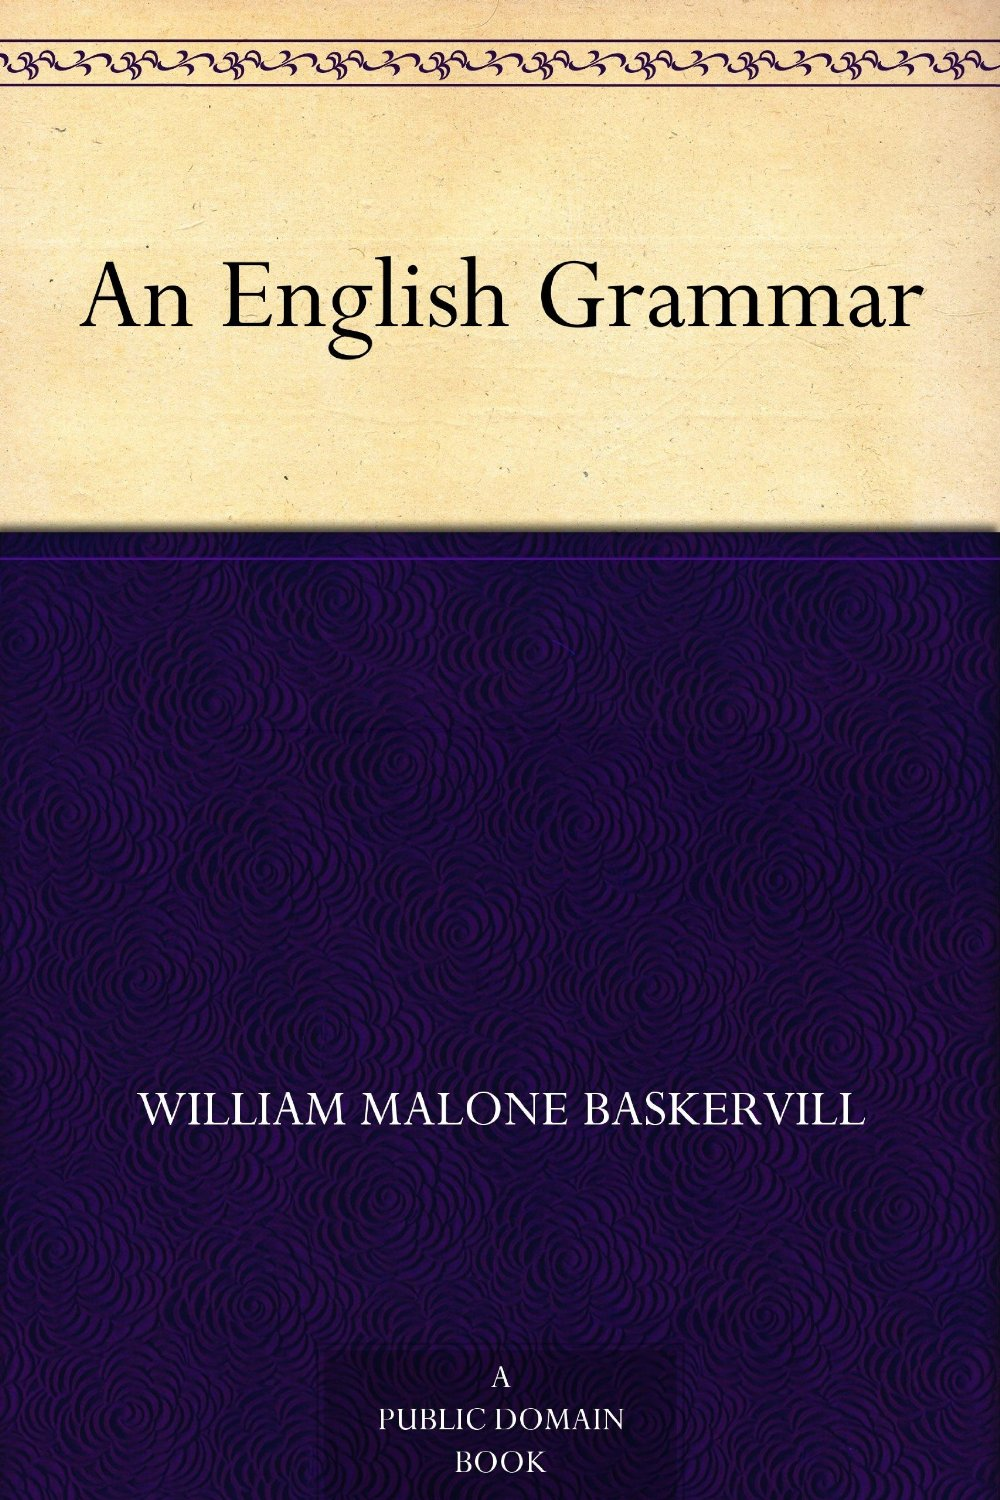 Cover of the book An English Grammar by J.W. Sewell